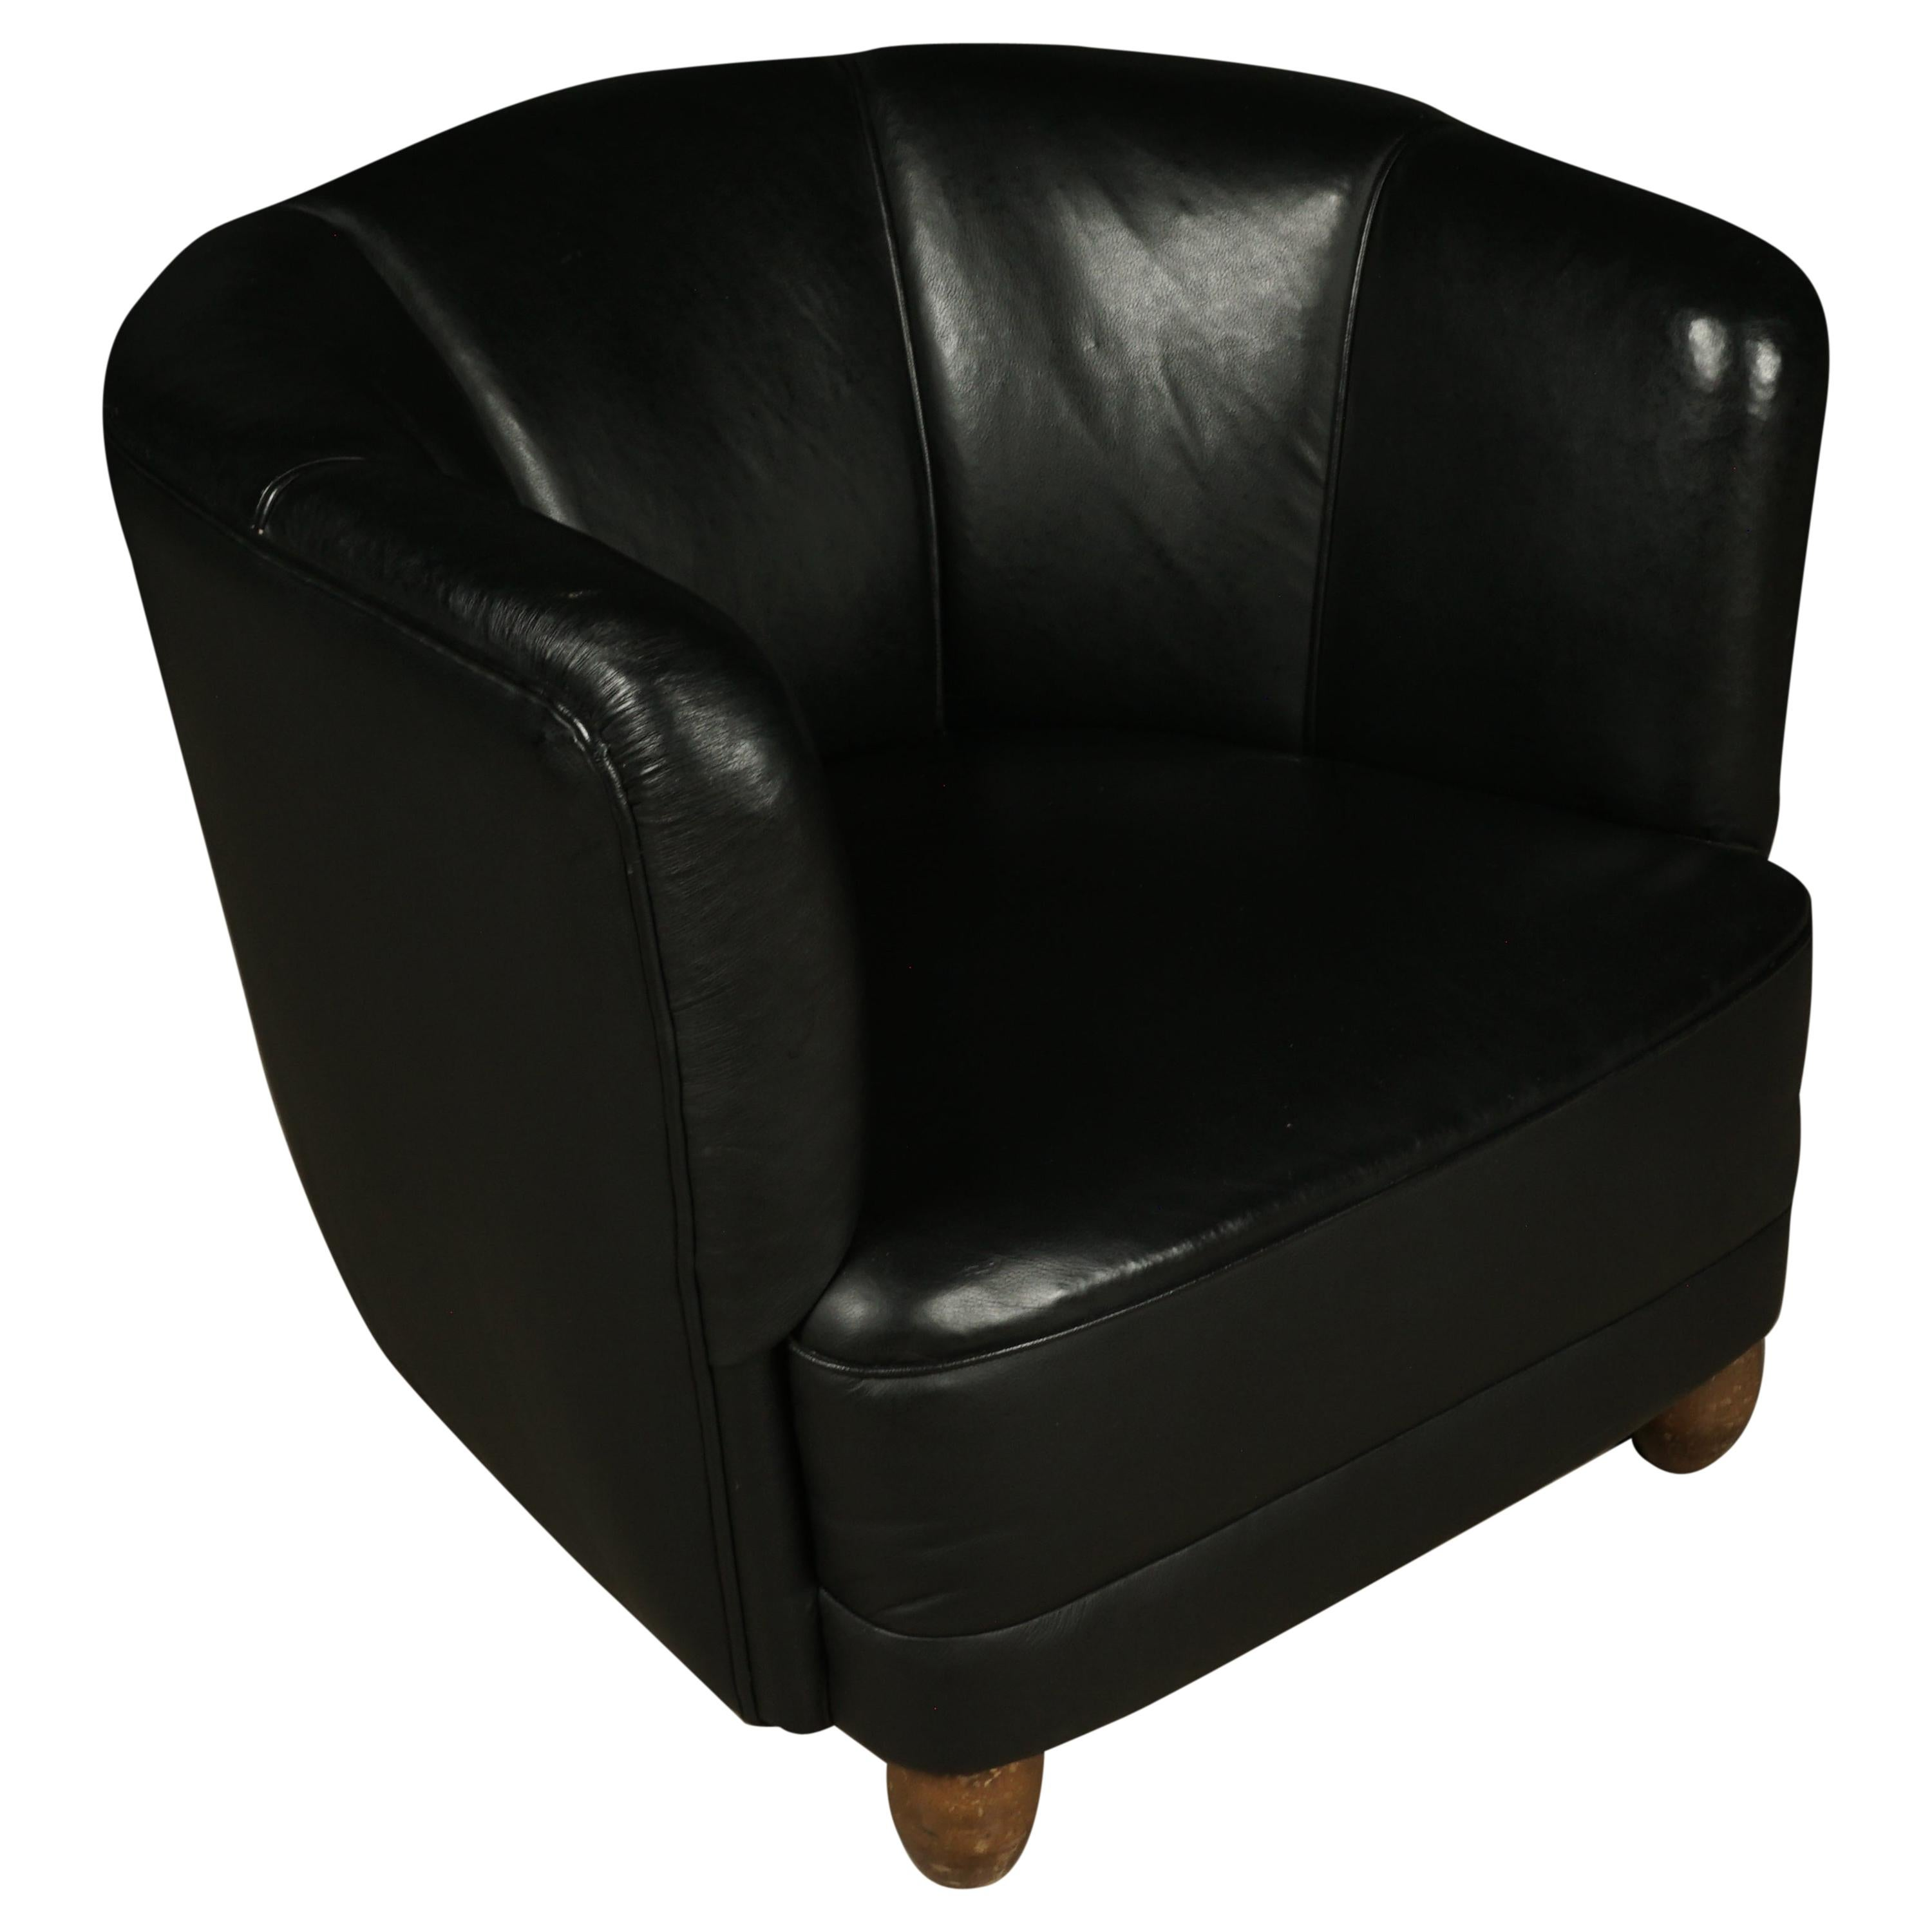 Vintage Leather Club Chair from Denmark, circa 1950